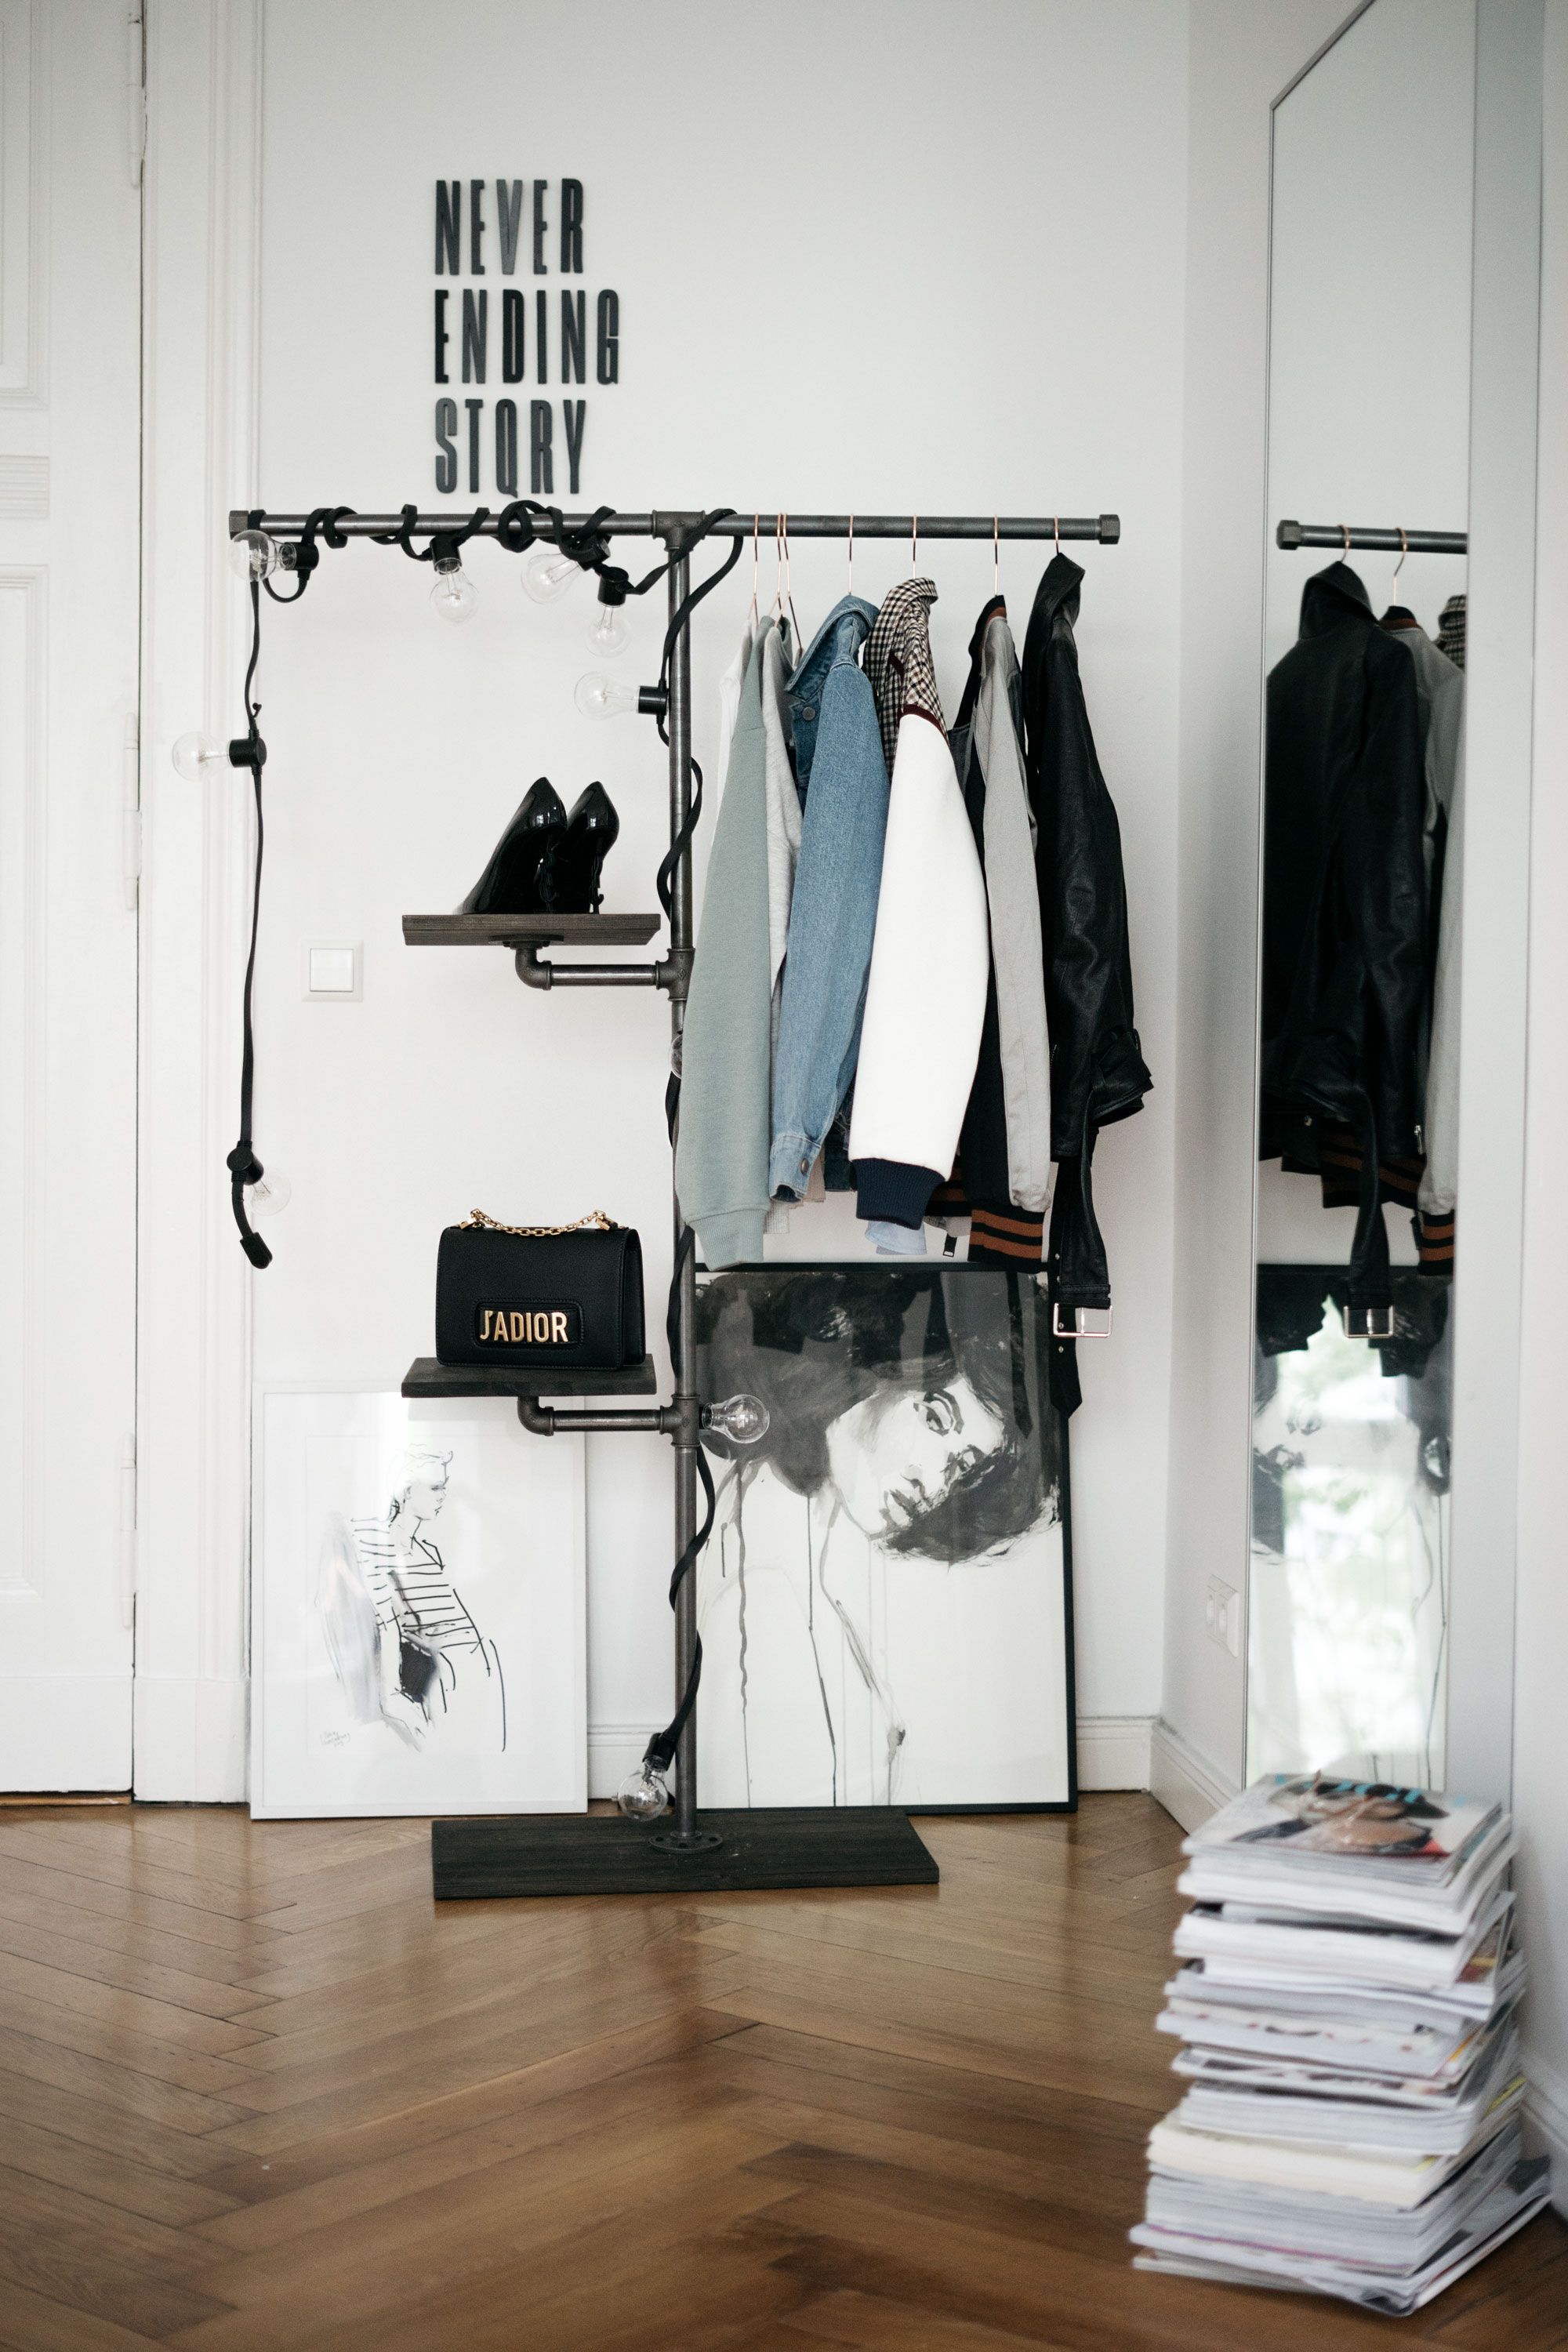 Your Home Kleiderschränke 9 Tips For A Tidier Closet Fashion Blog From Germany Modeblog